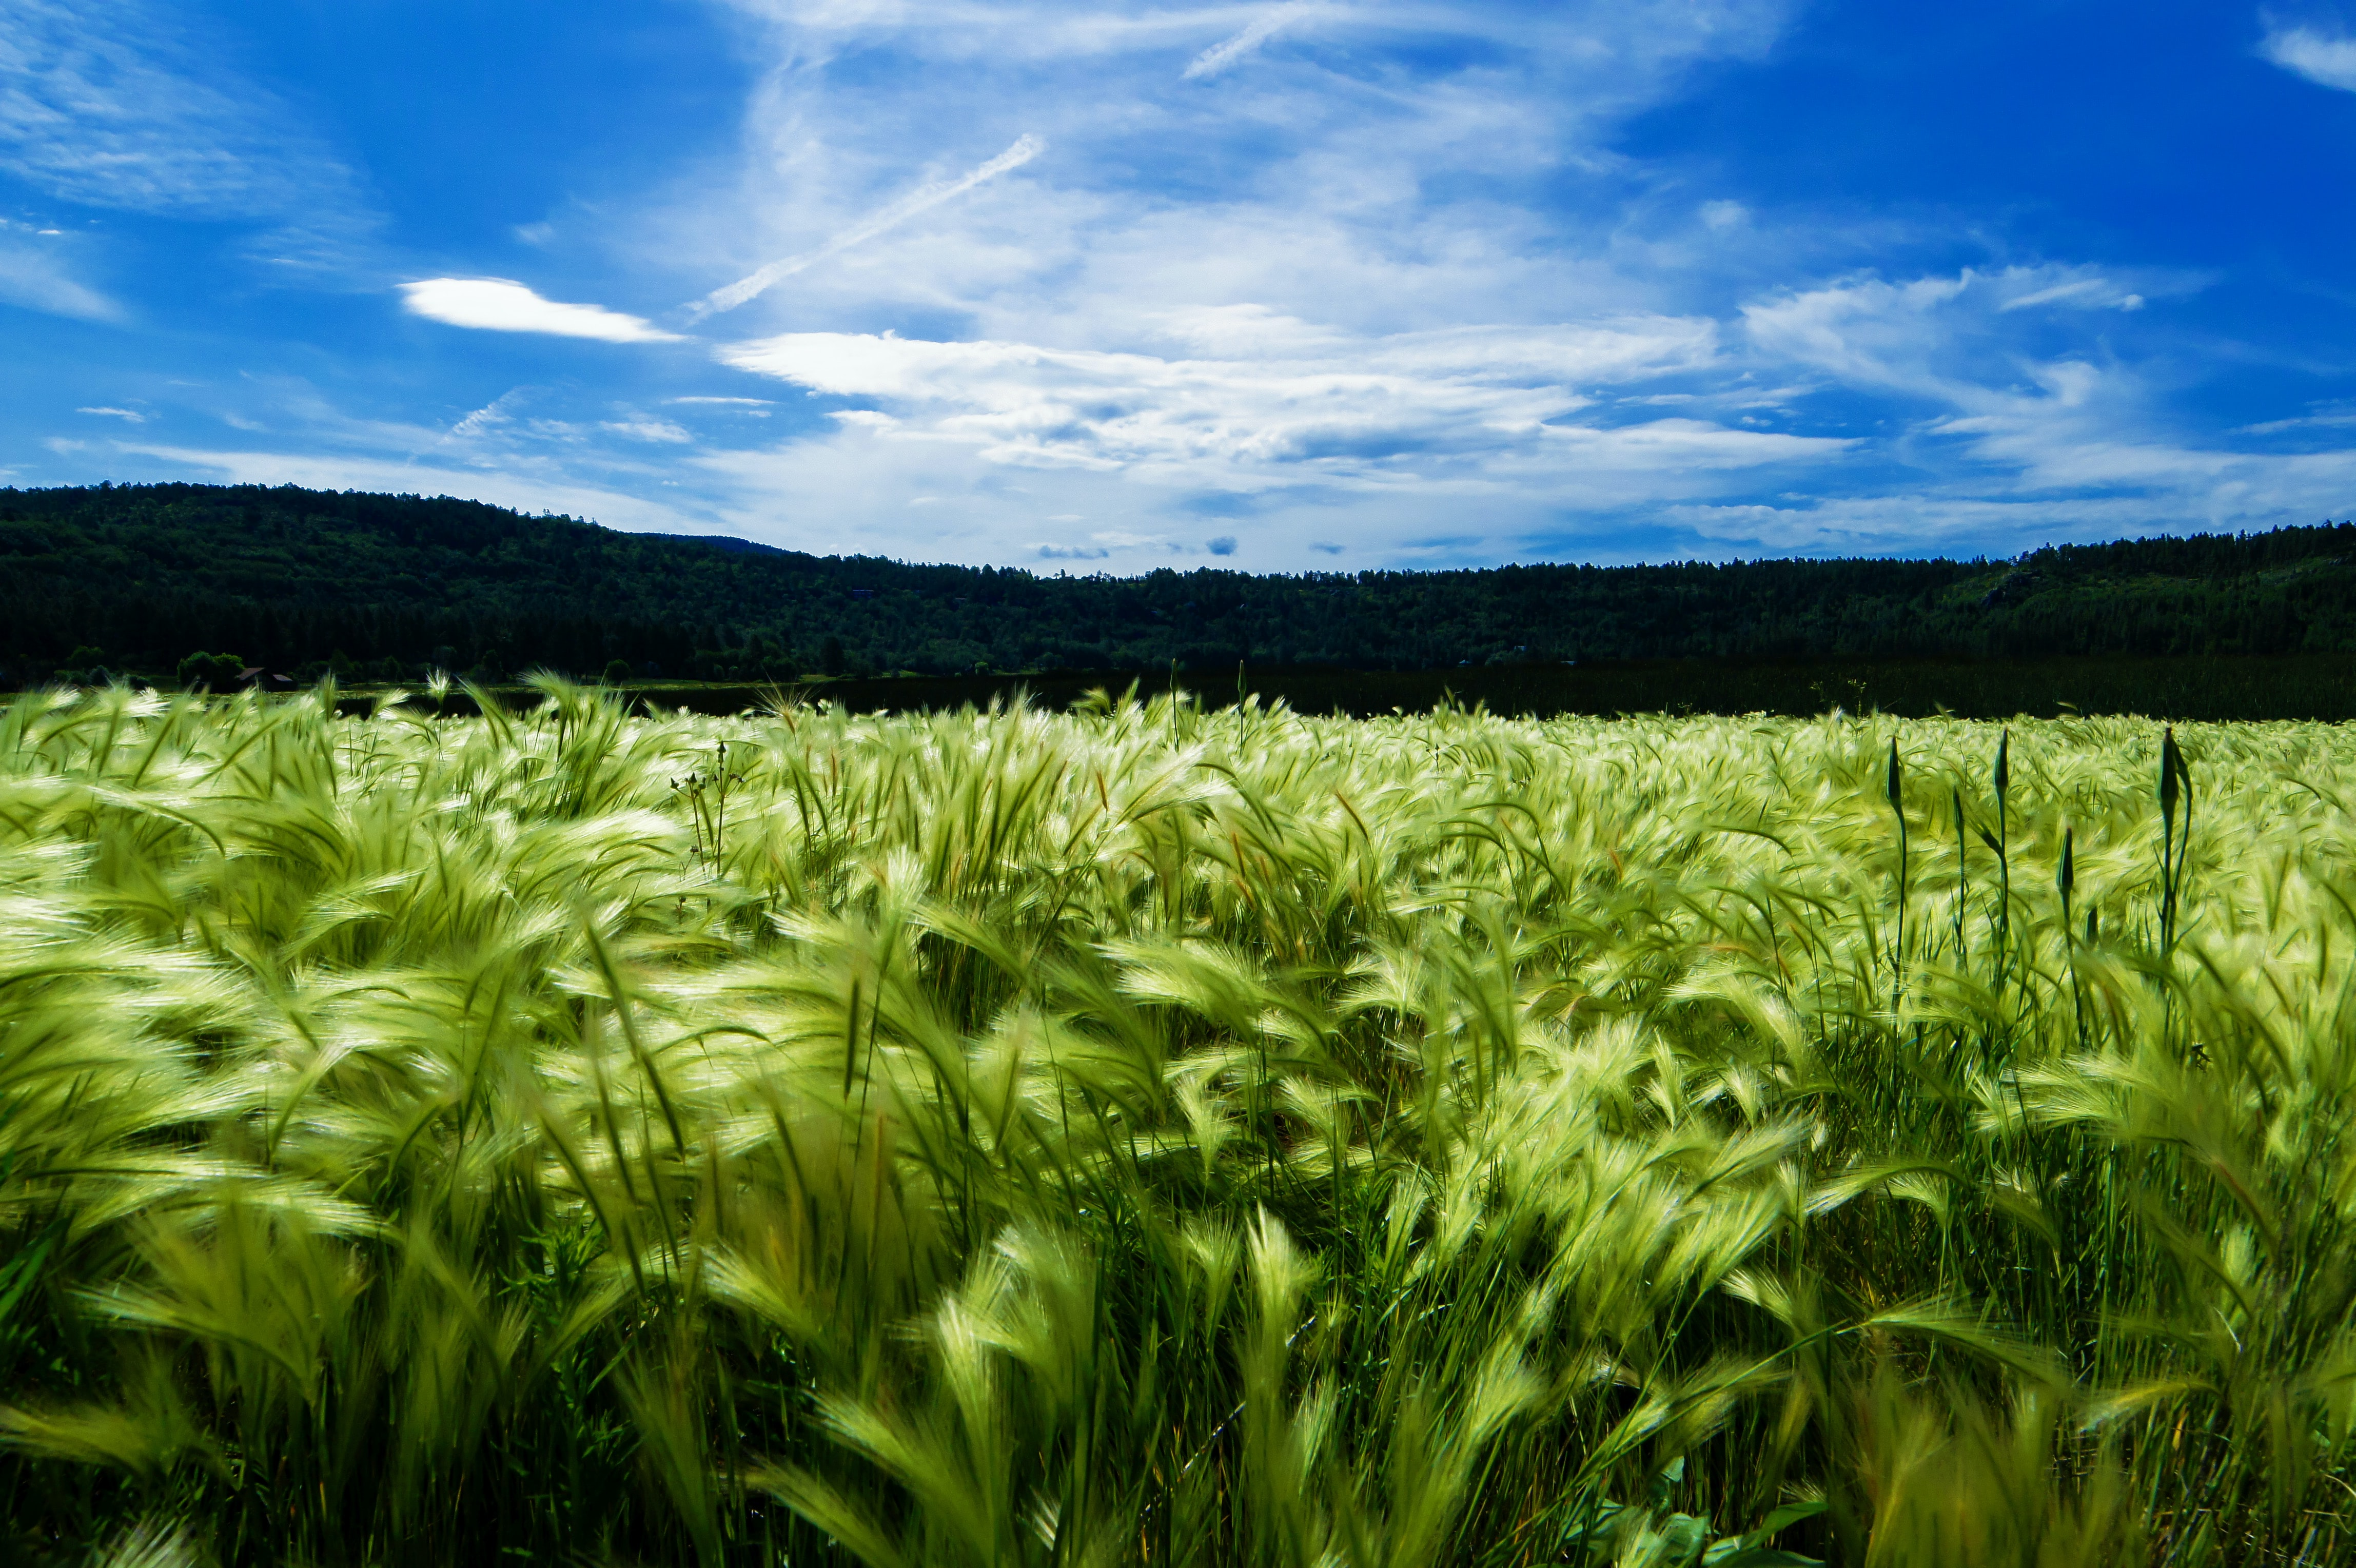 Rural agriculture features farmland of healthy growing wheat at Stoneman Lake